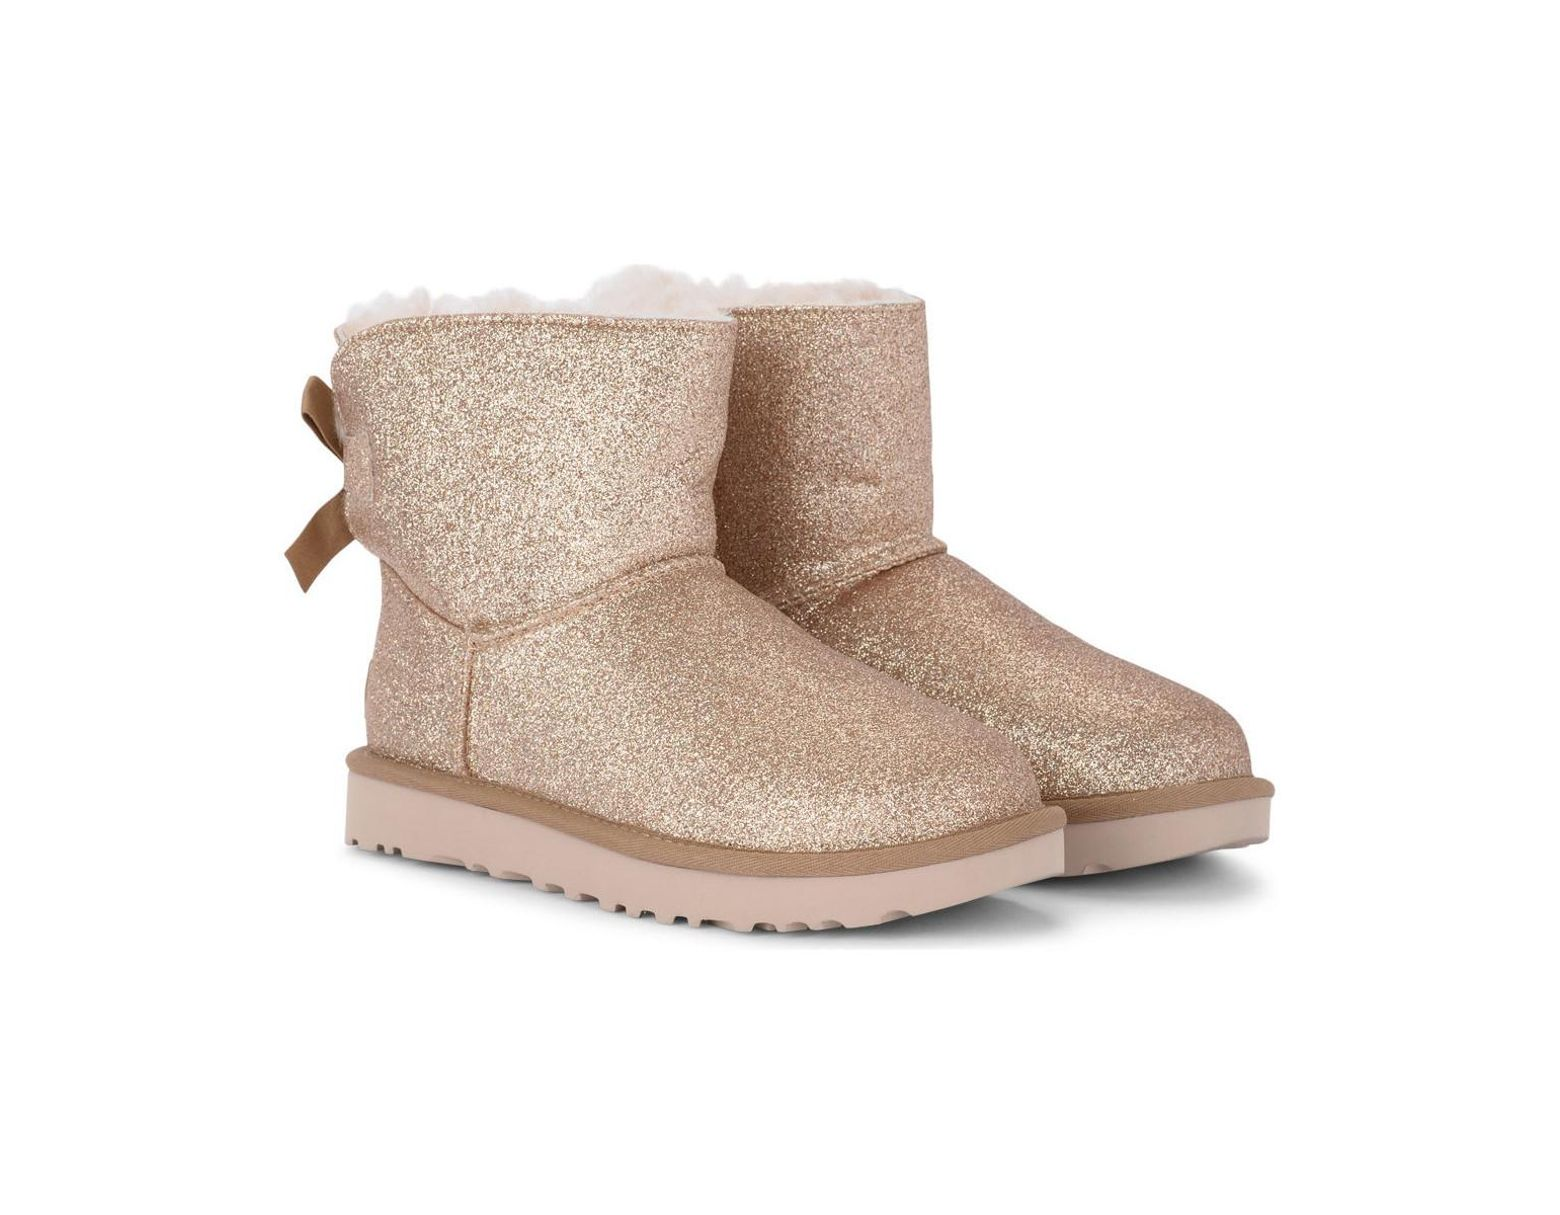 9228ac621 UGG Mini Bailey Bow Sheepskin And Golden Glitter Ankle Boots Women's Snow  Boots In Gold in Metallic - Lyst